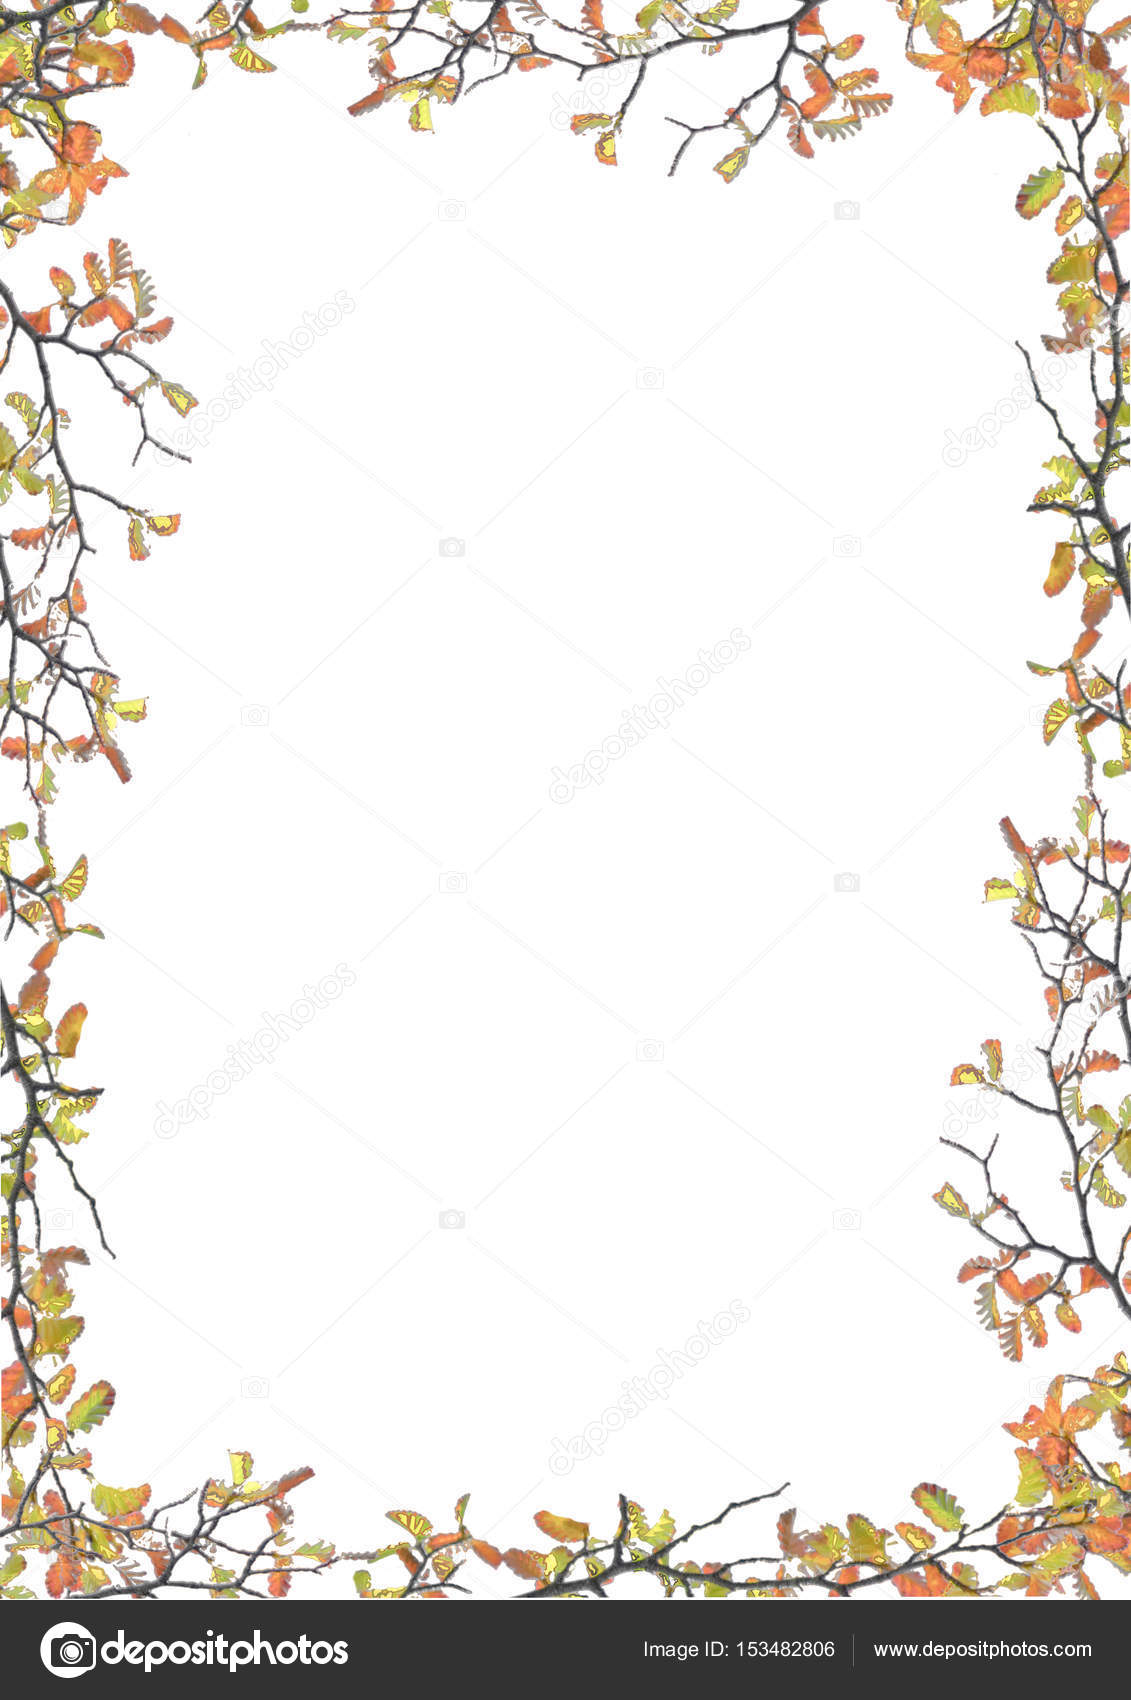 Marco blanco con bordes de flores decoradas — Foto de stock ...